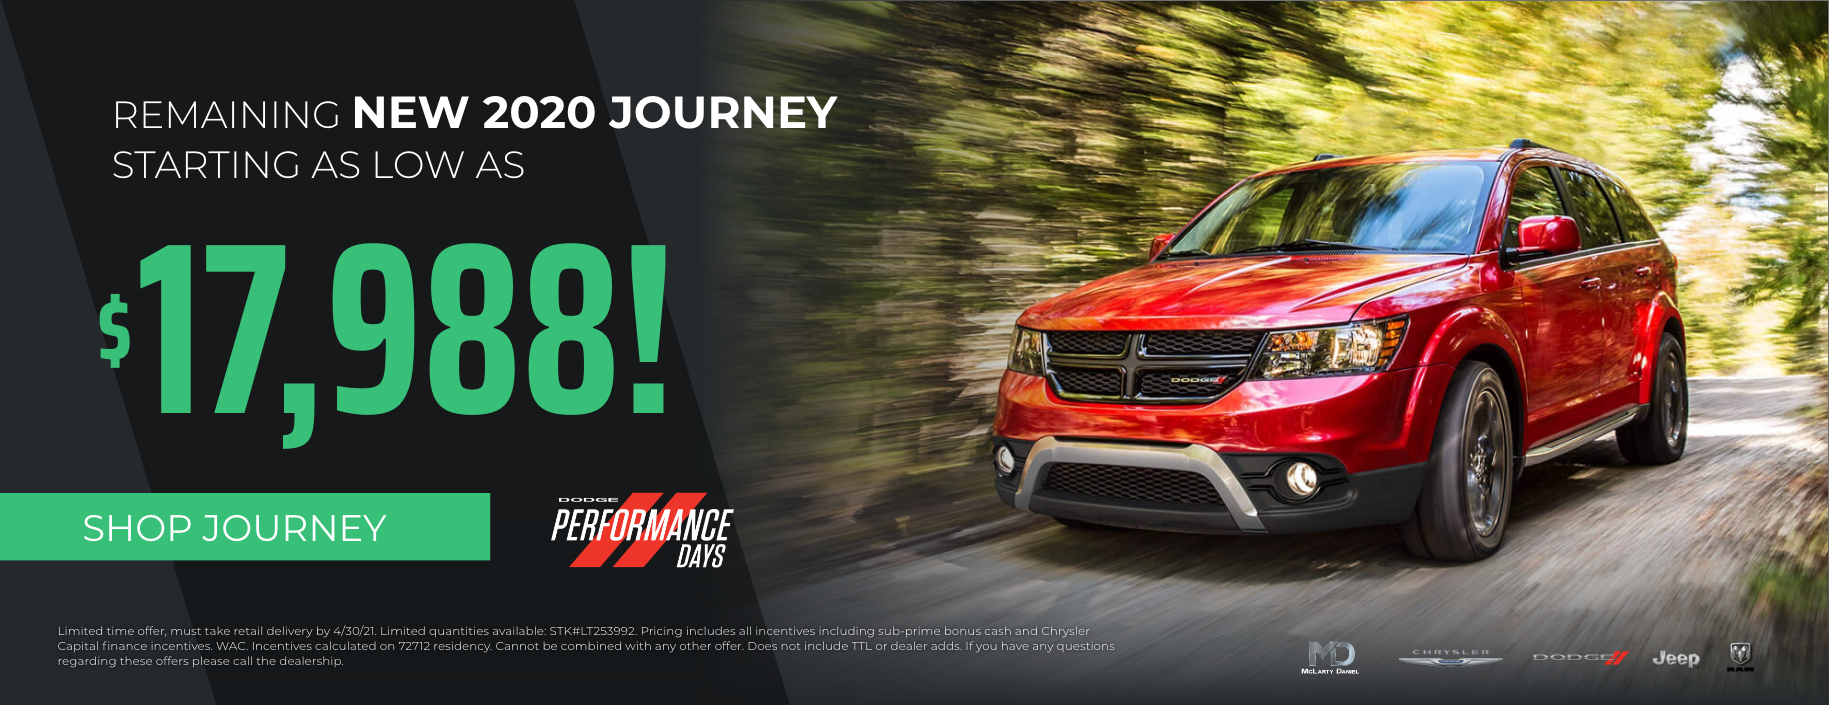 2020 Dodge Journey starting at only $17,988